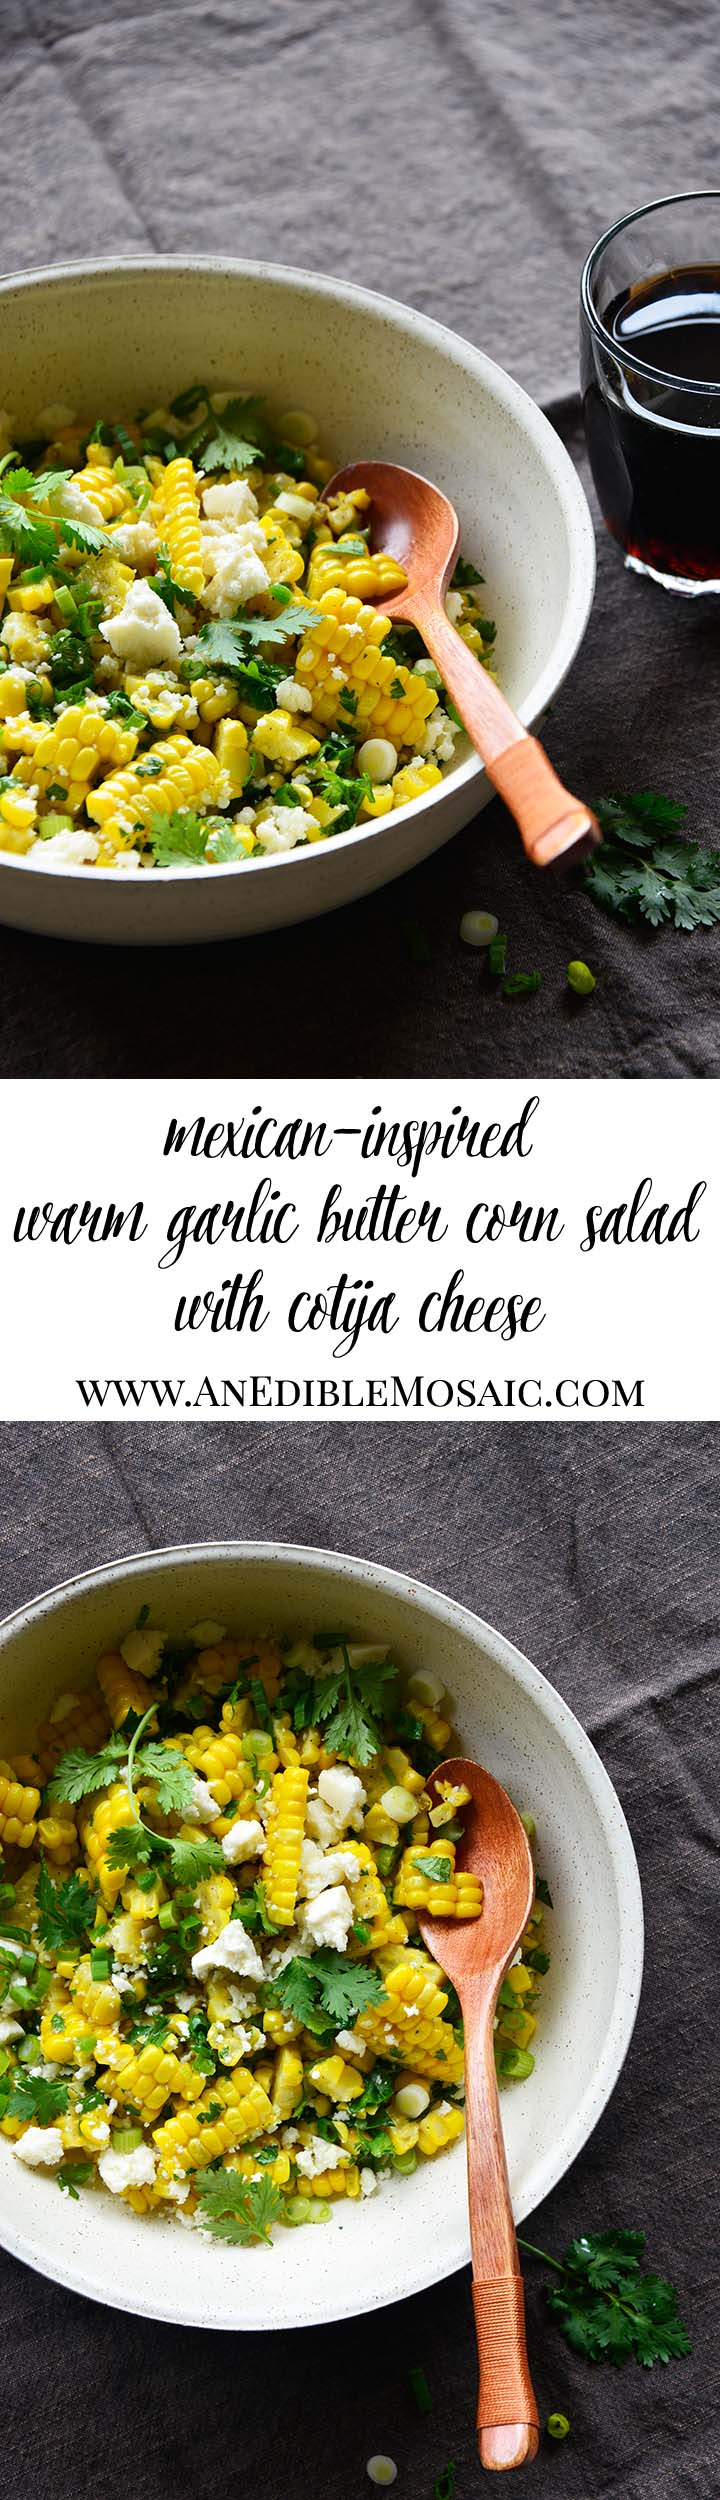 Mexican-Inspired Warm Garlic Butter Corn Salad with Cotija Long Pin